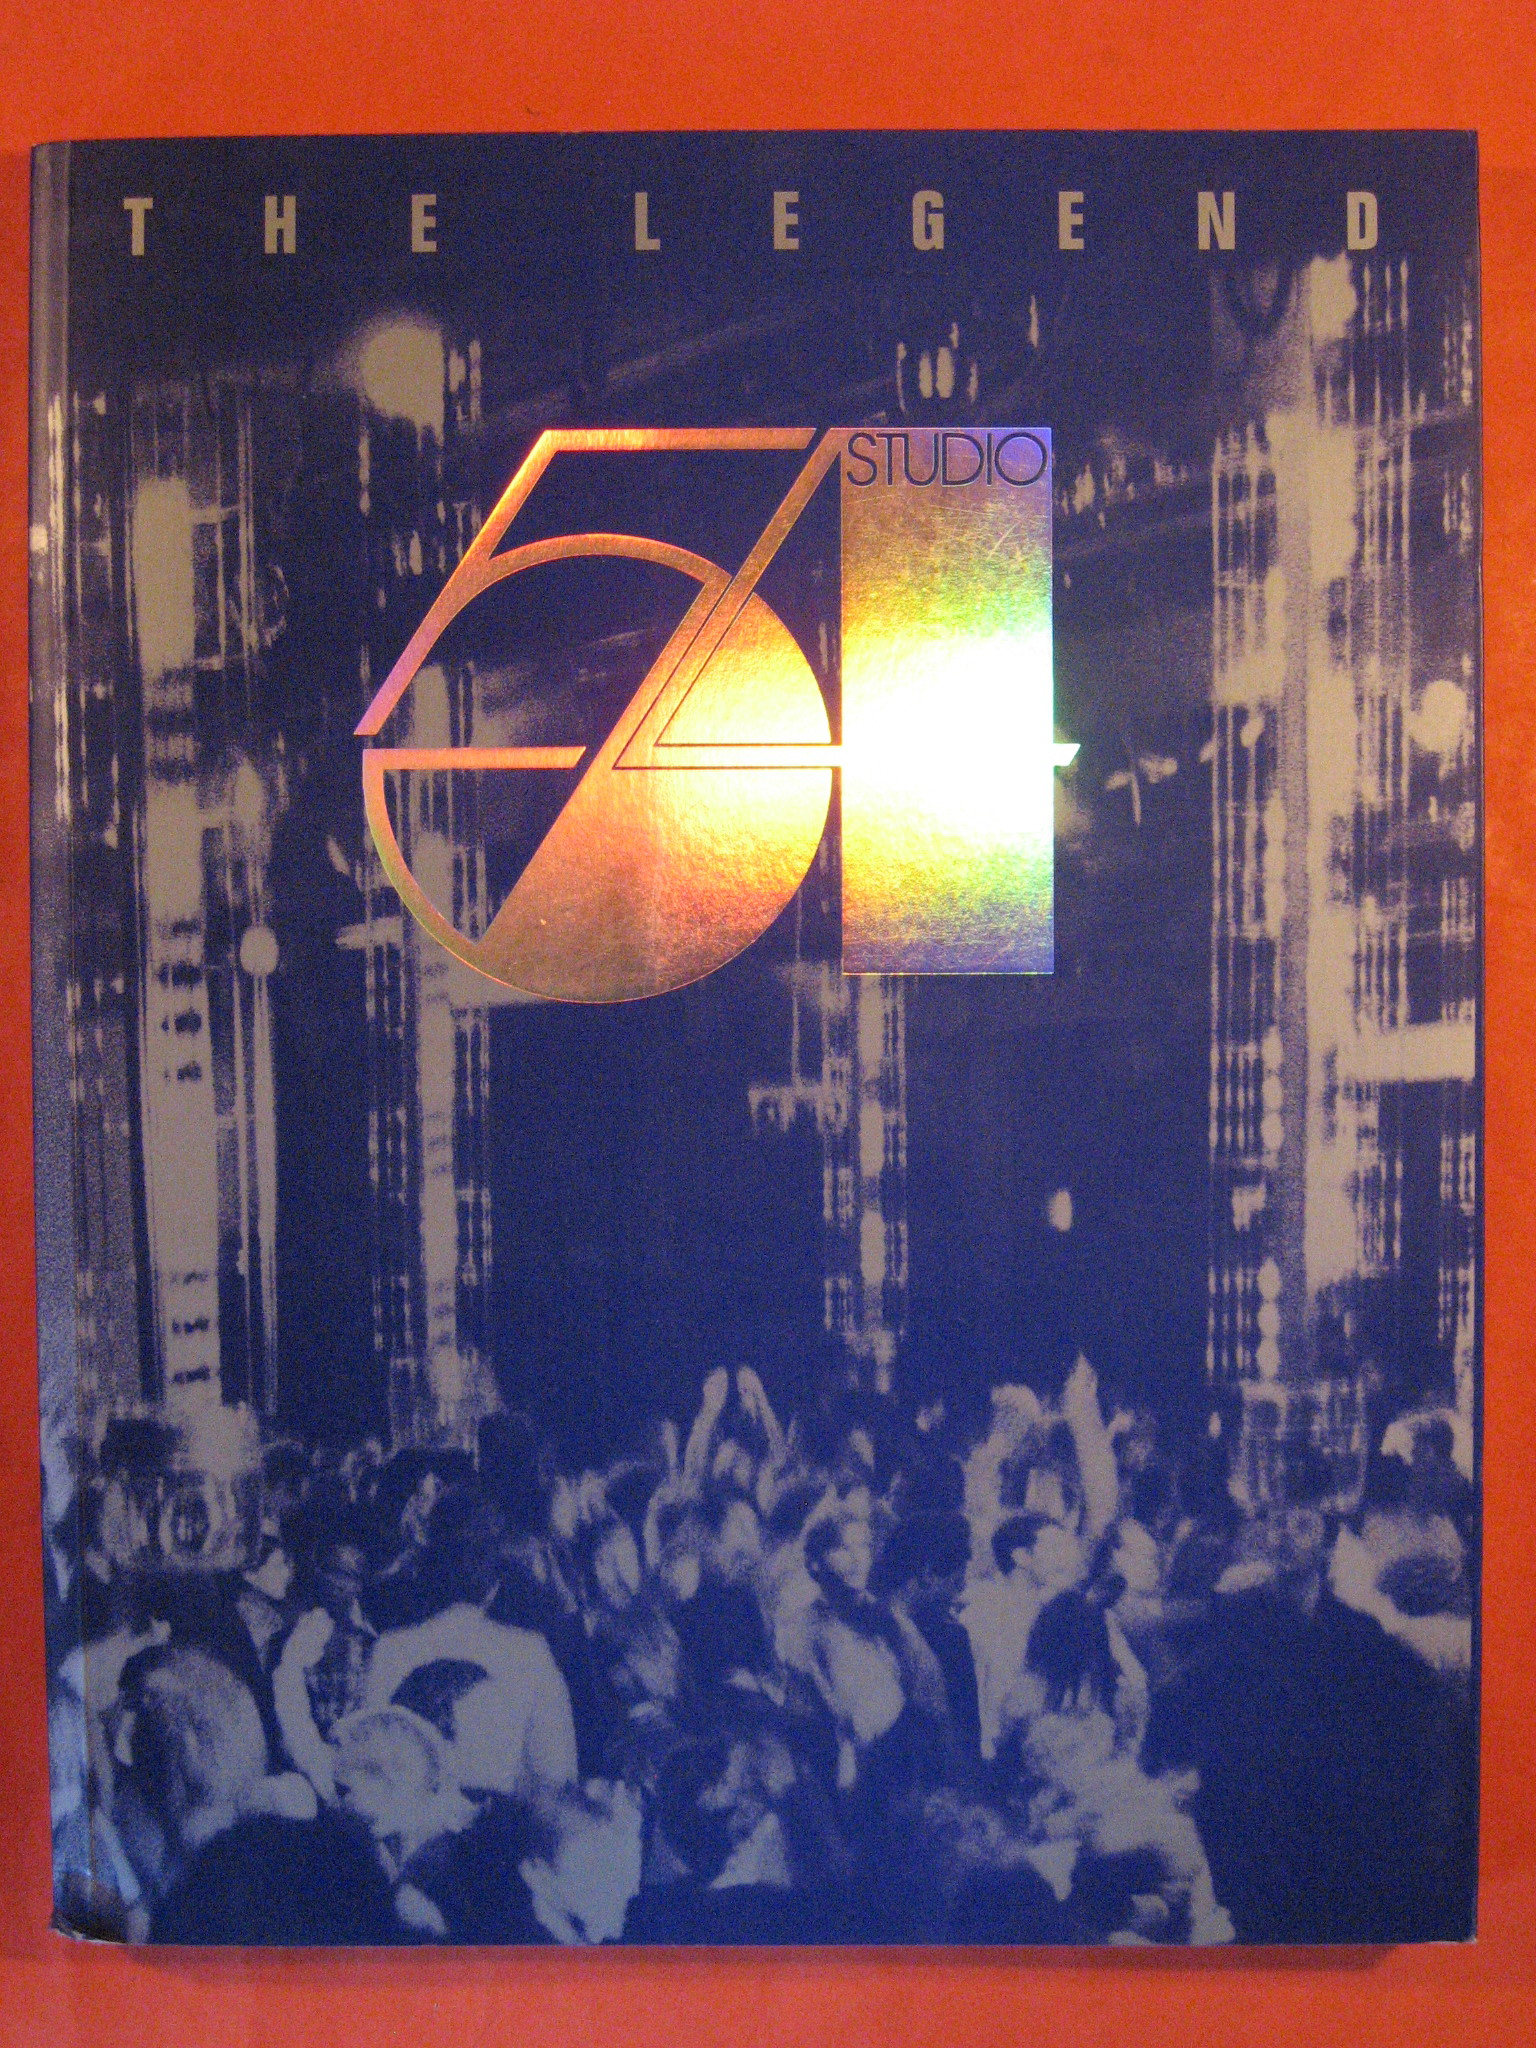 Studio 54: The Legend, Guest-Haden, Anthony